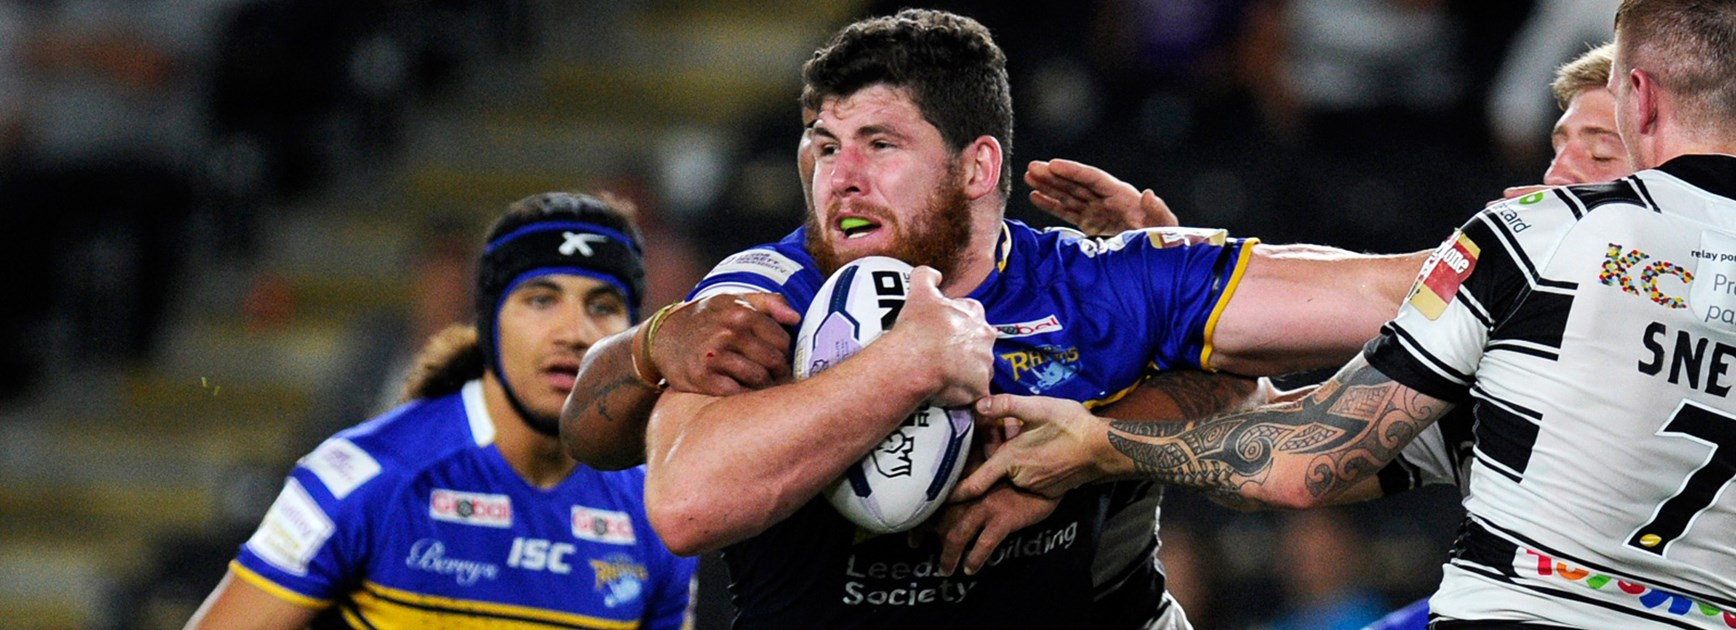 Mitch Garbutt is relishing the opportunity to play with Leeds in the UK Super League.